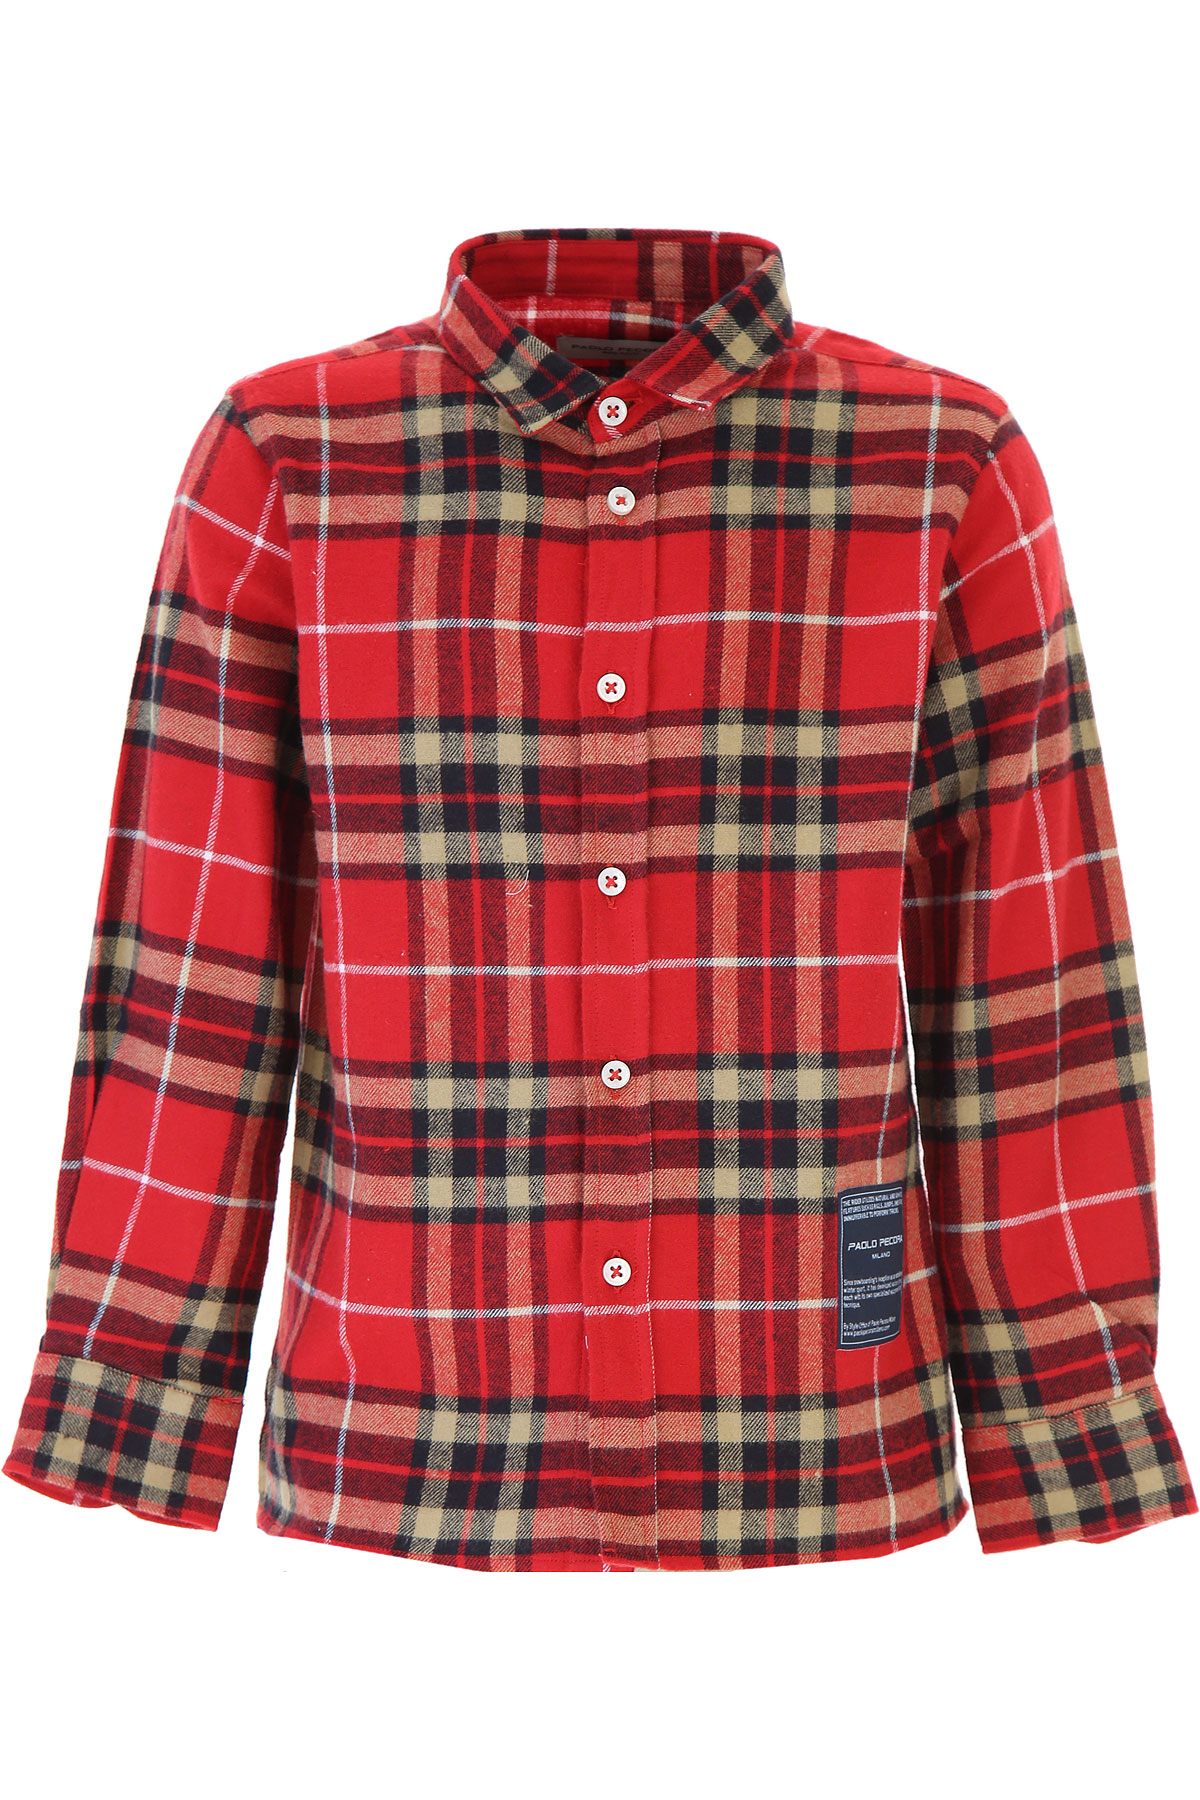 Paolo Pecora Kids Shirts for Boys On Sale, Red, Cotton, 2019, 16Y 6Y